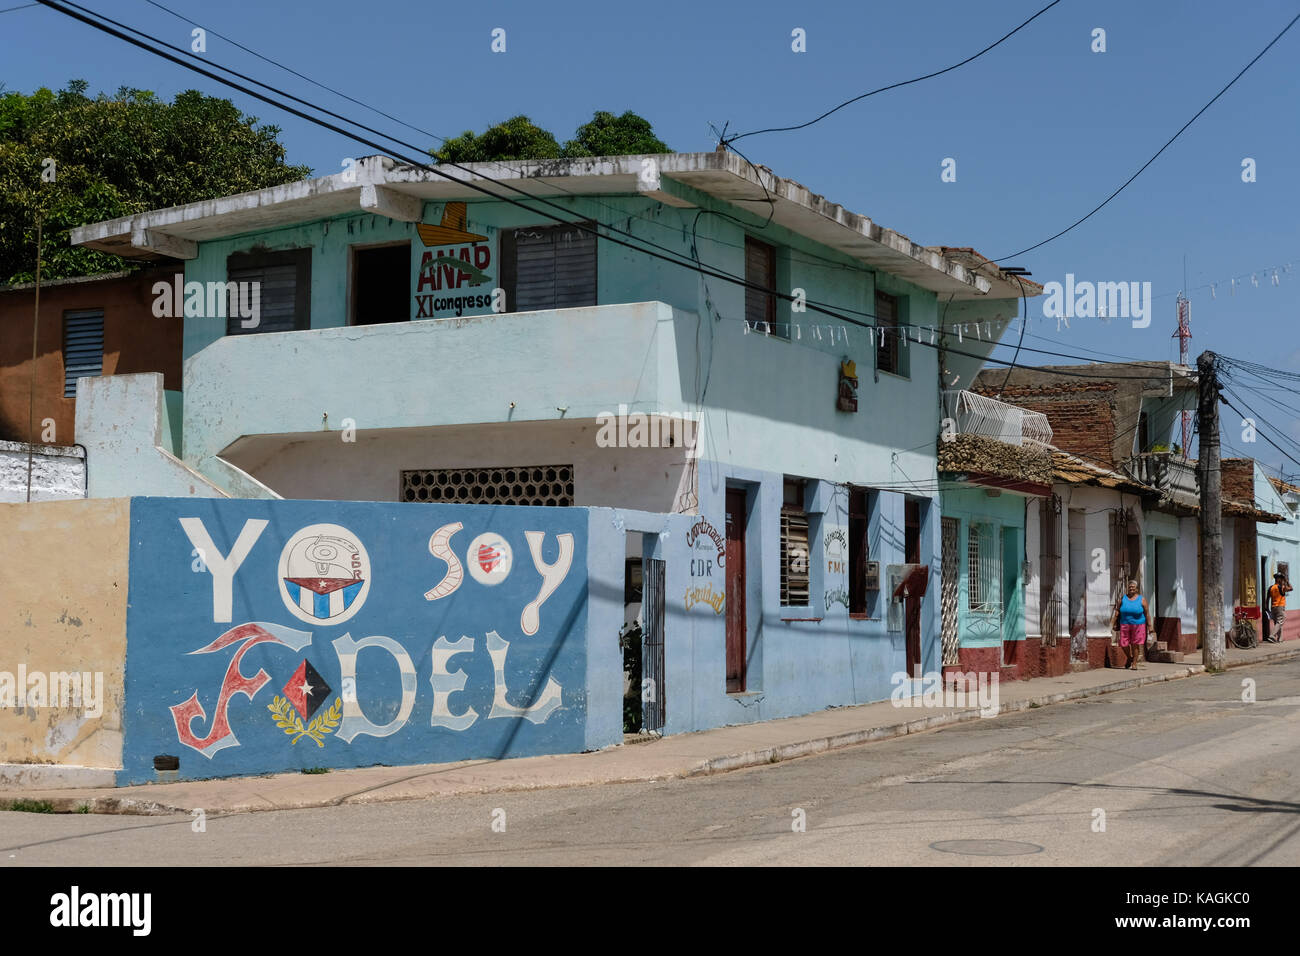 Street art in support of Fidel Castro painted on a street wall in Trinidad, Cuba. - Stock Image